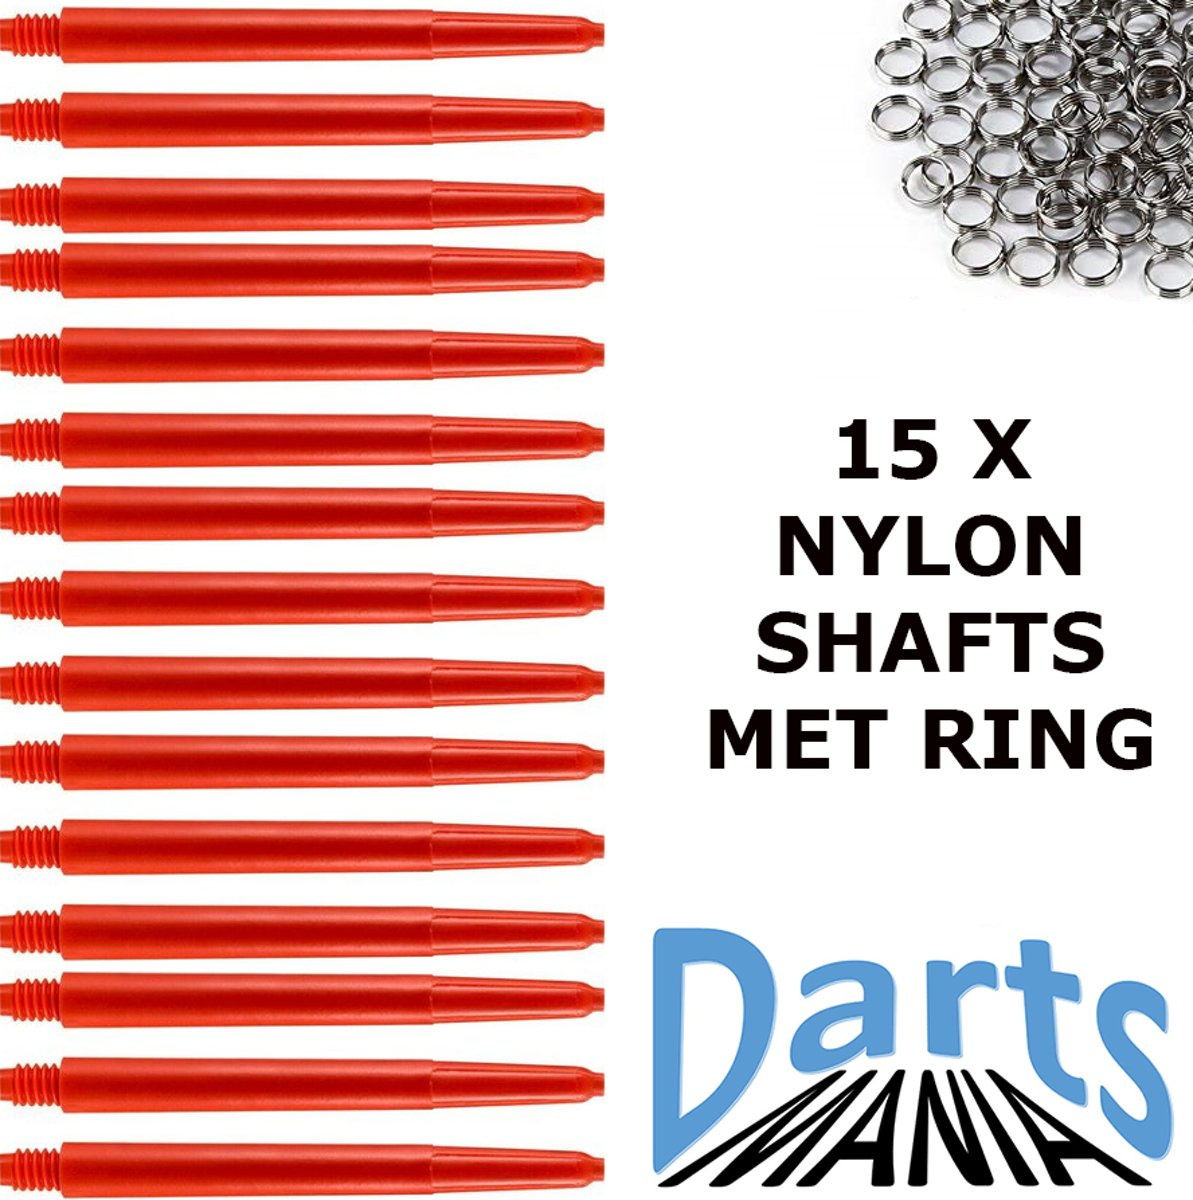 Darts-Mania Rood Medium (48 mm.) incl. veerringetjes 5 sets - Dart - Shafts kopen